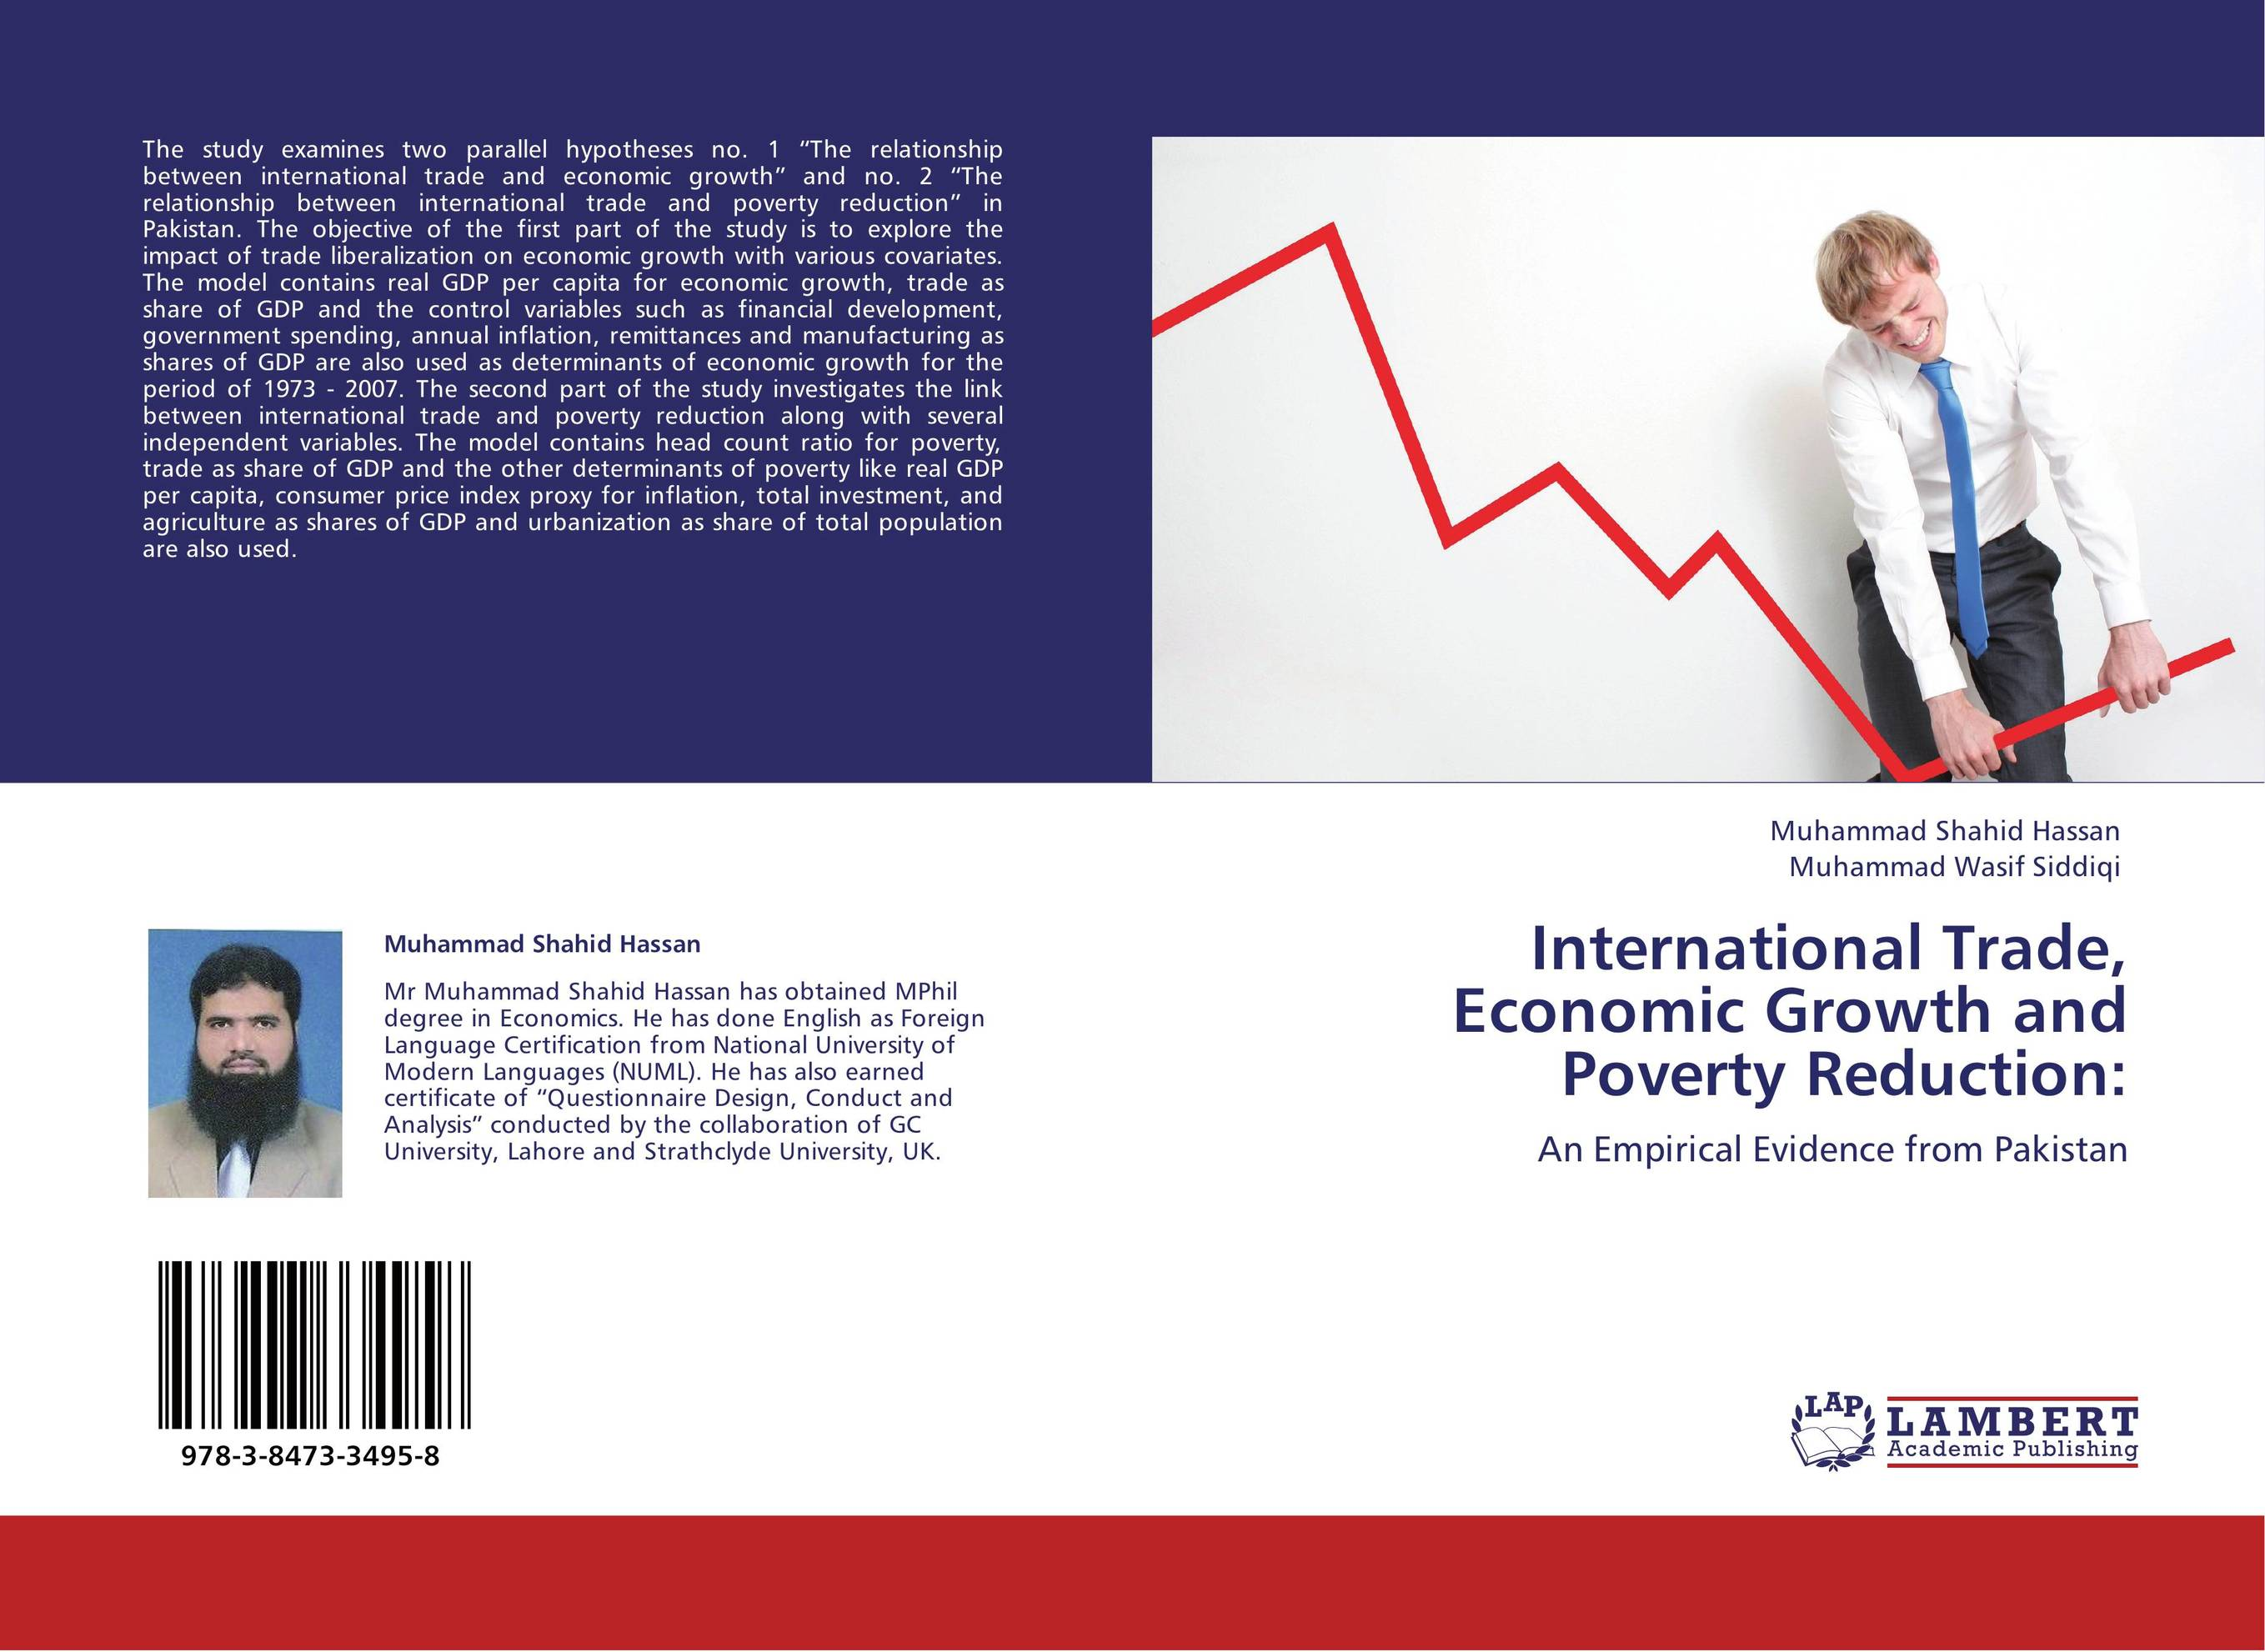 stock market and economic growth an The country's stock market results indicate that growth is affected to a very large extent by liquidity and the size of the stock market this is especially true where the institution quality is low also, there are significant contributions to economic growth by any form of investment be it foreign direct.